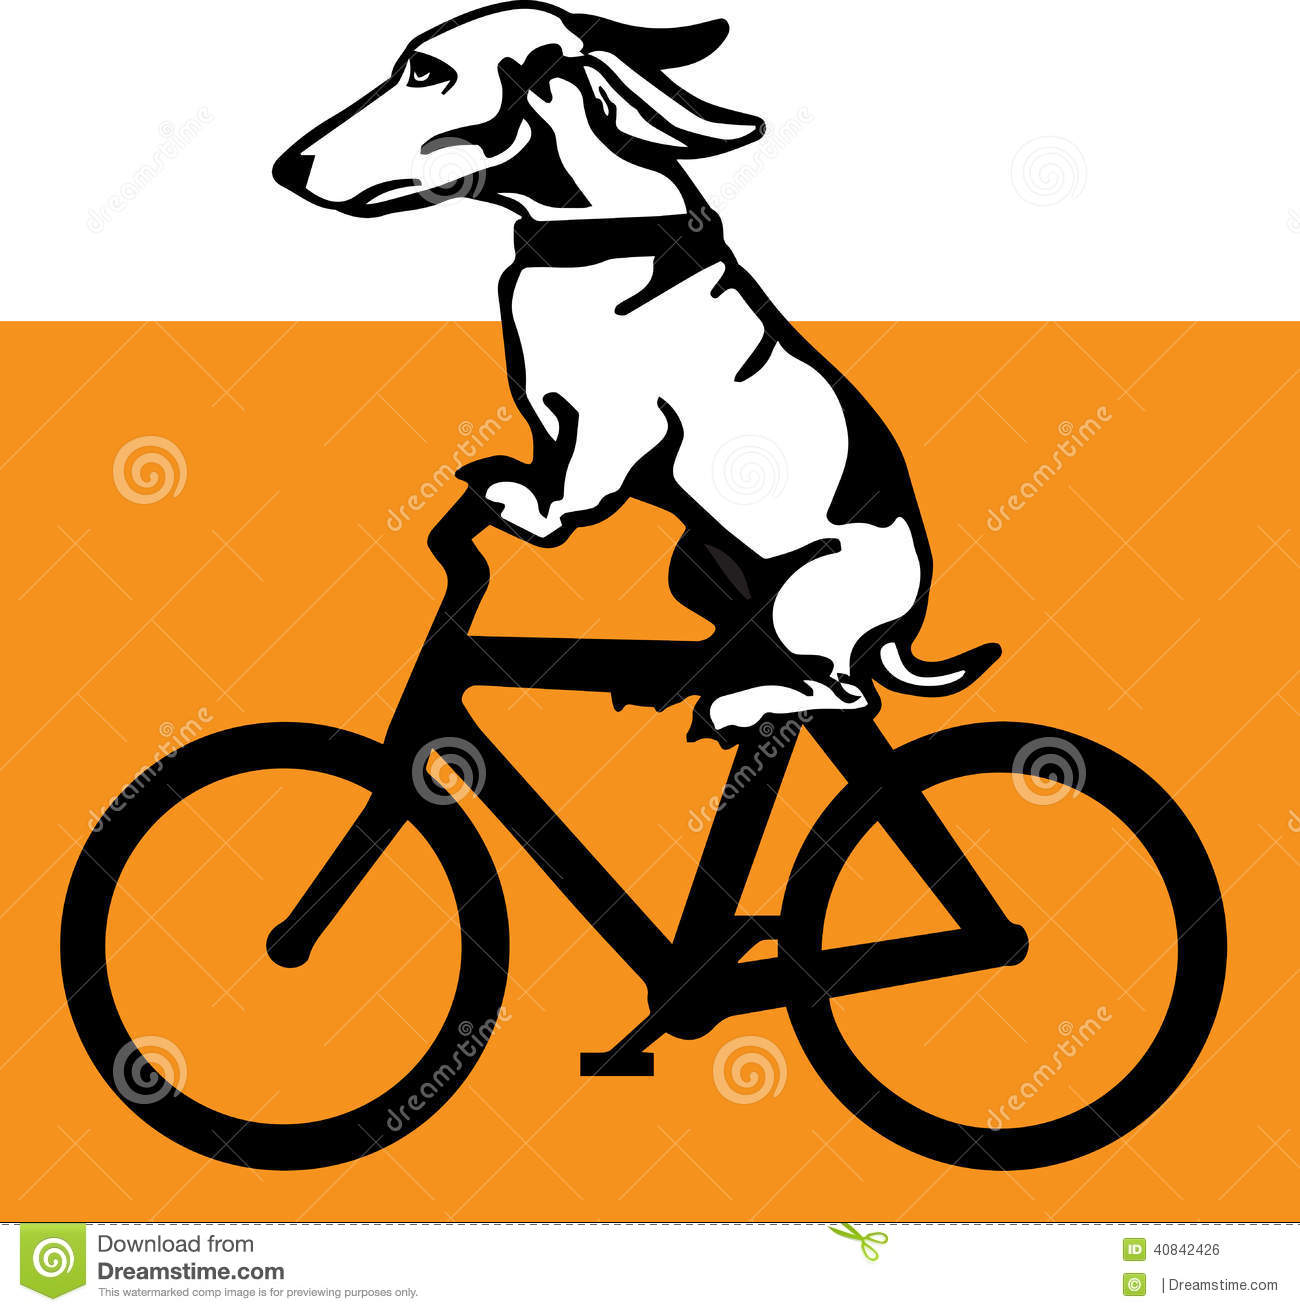 Wiener Dog Riding A Bicycle Stock Vector - Image: 40842426